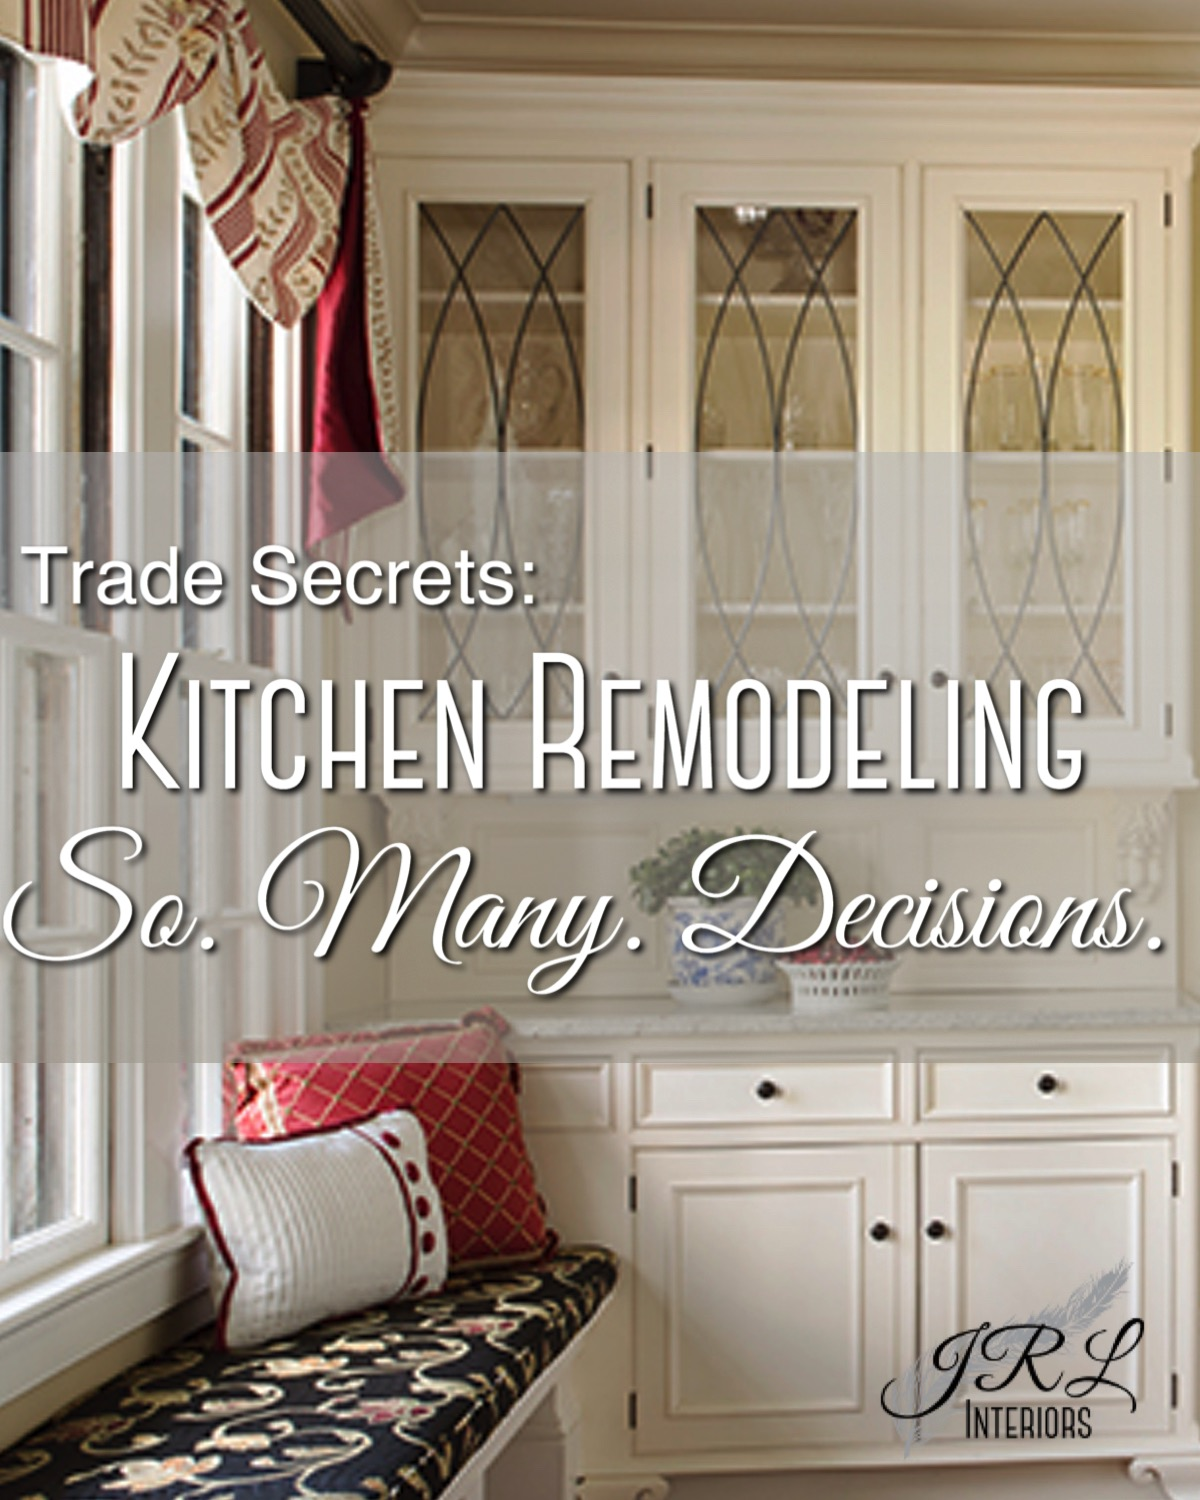 Kitchen remodeling decisions.jpg